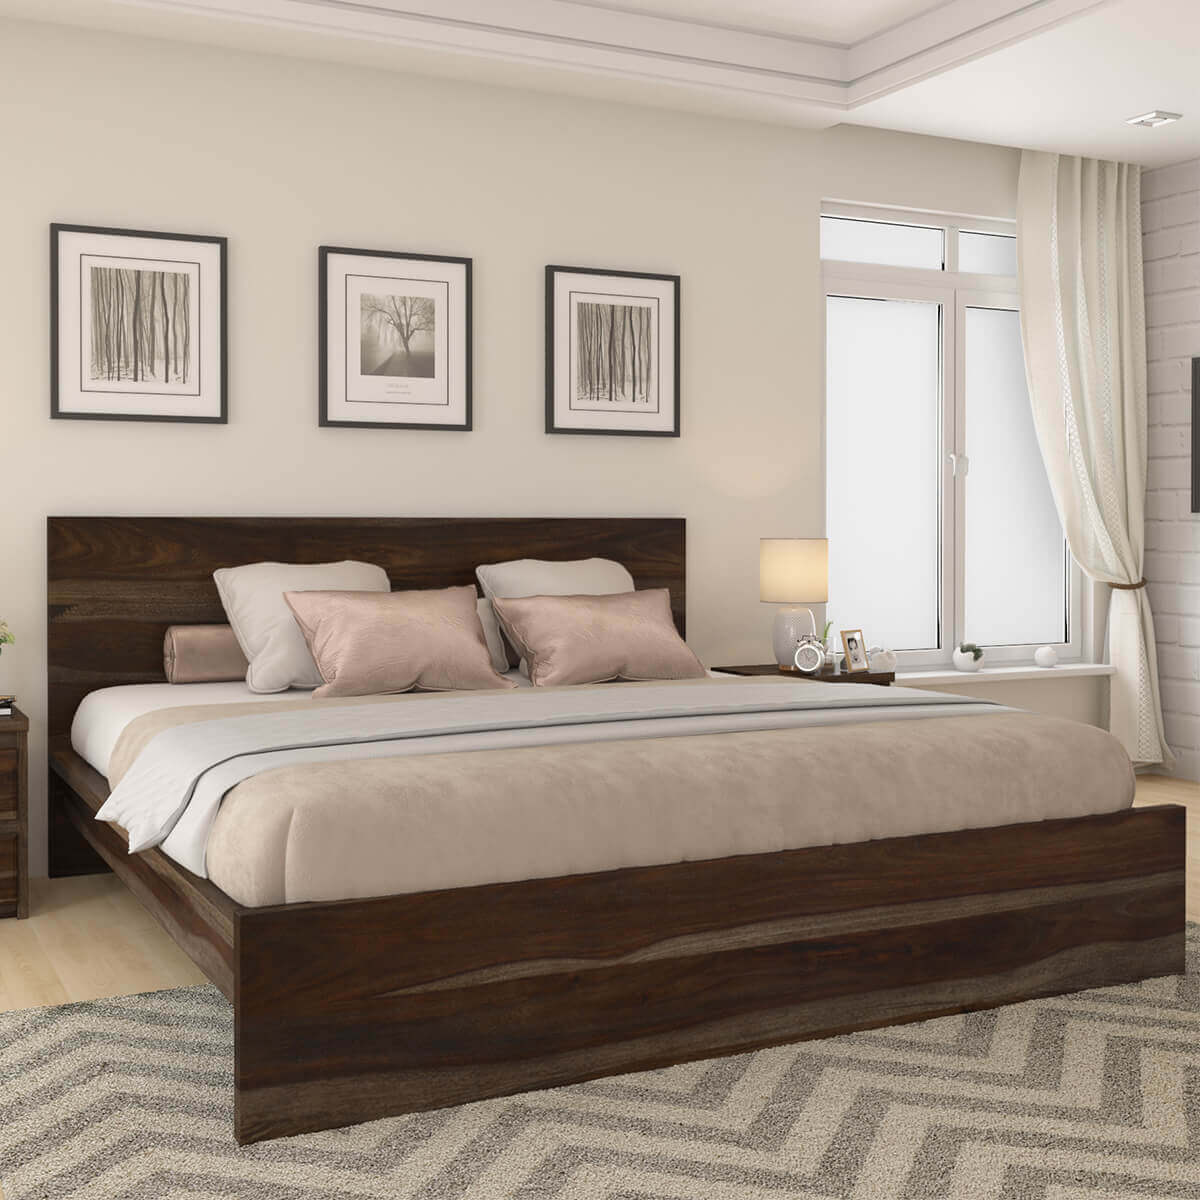 Delaware solid wood platform bed frame 3pc suite Wood platform bed